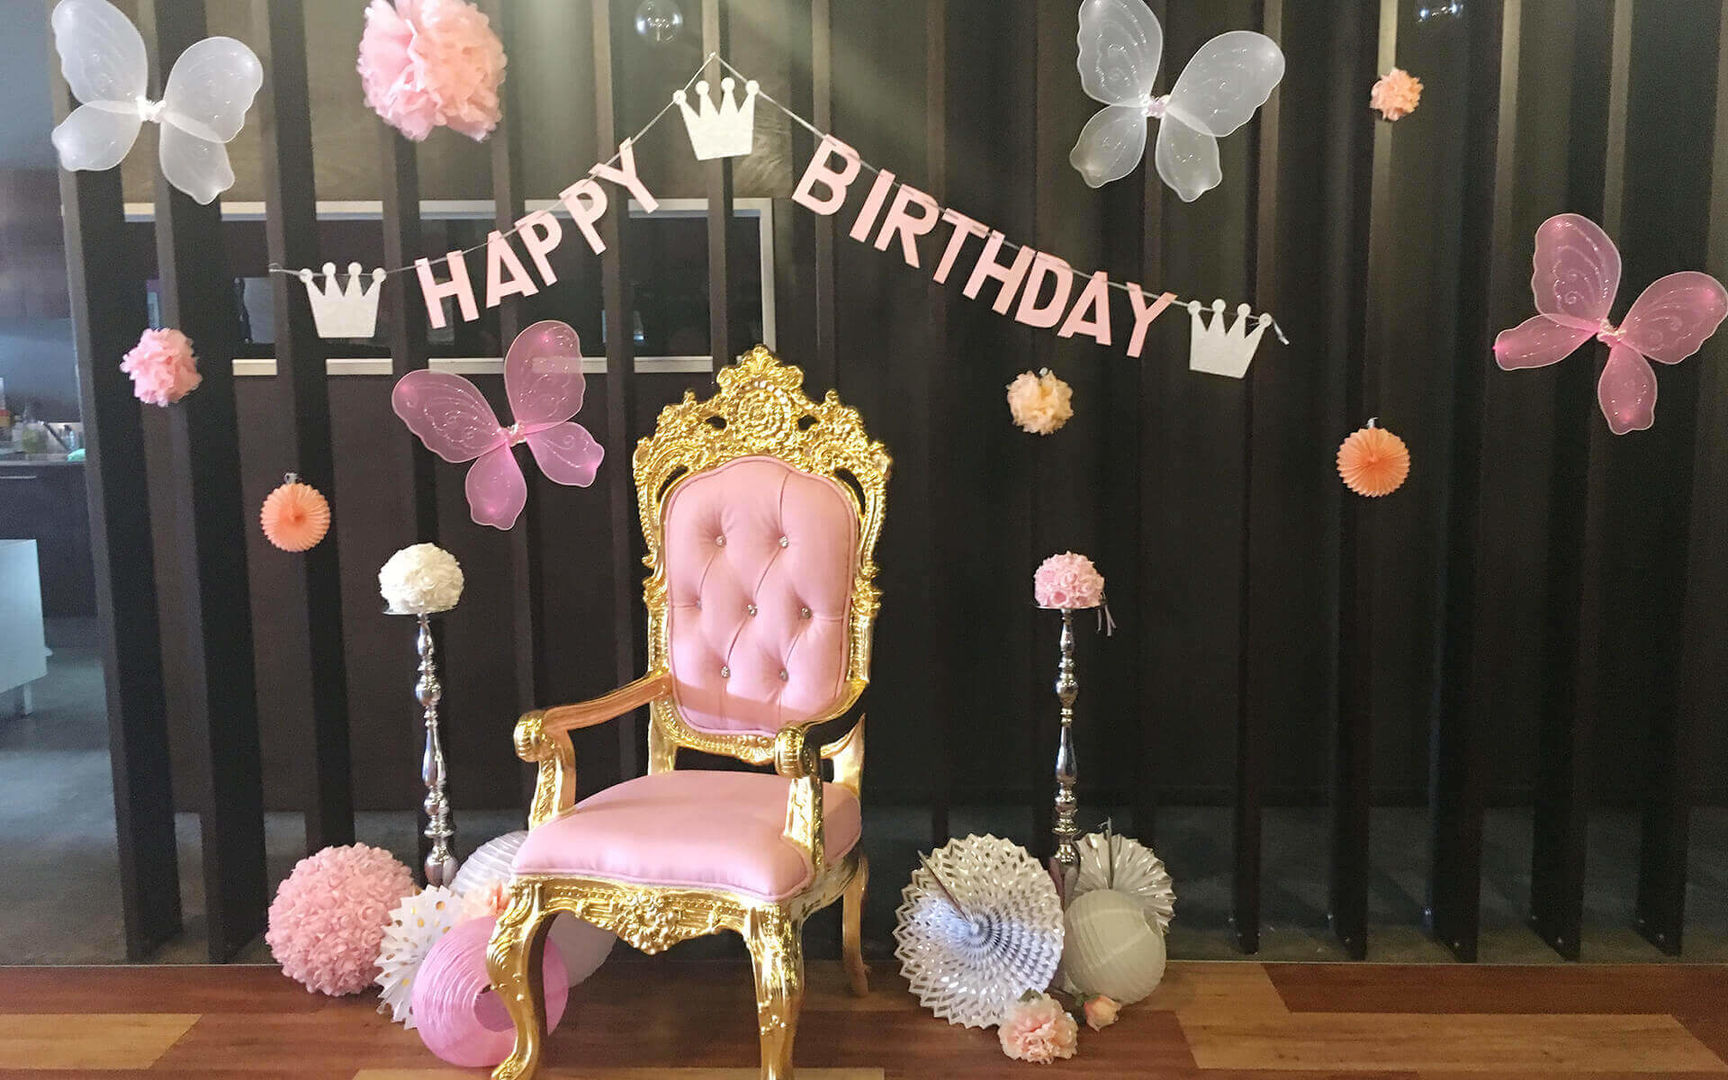 Who is the best birthday party place in Christchurch